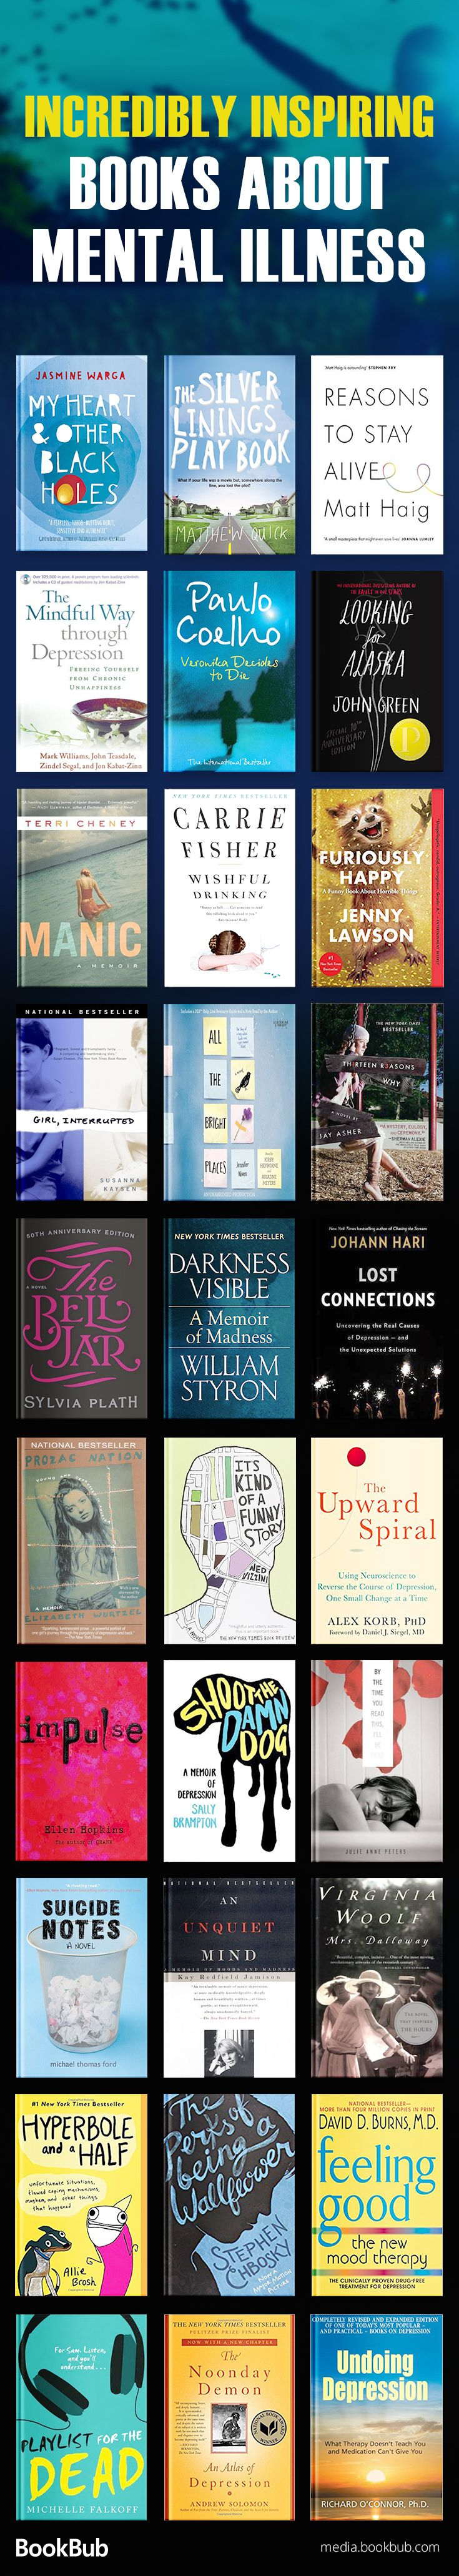 Inspiring books about mental illness, including books on depression, anxiety, and more. These are great books for women, men, and teens.